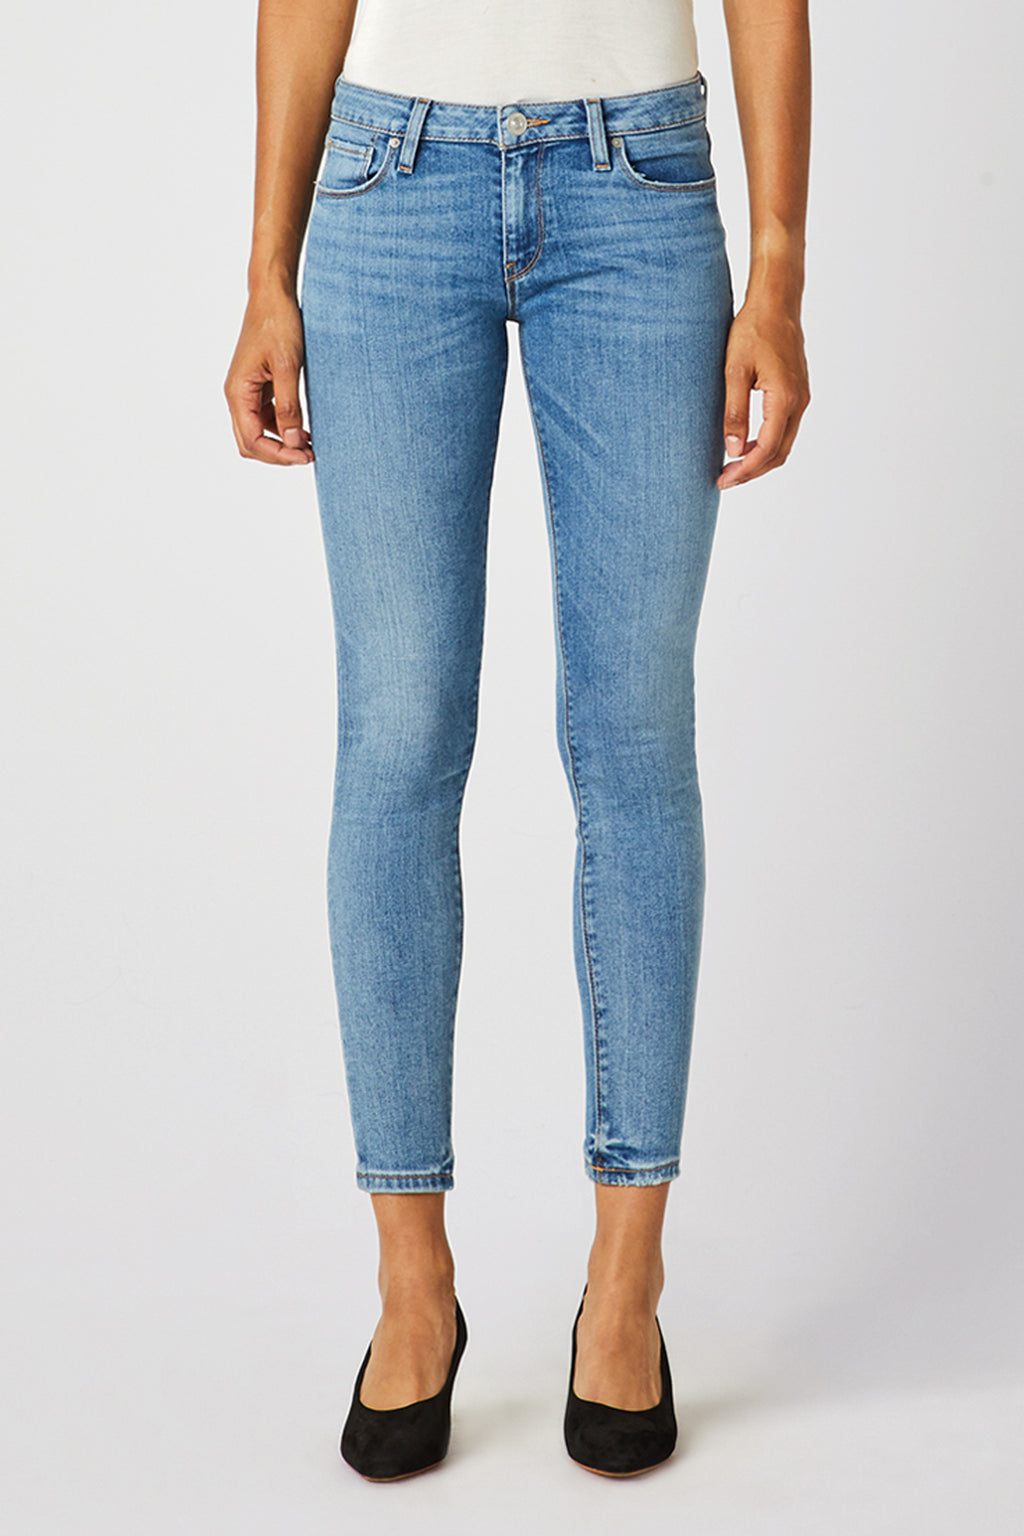 Krista Low-Rise Super Skinny Ankle Jean